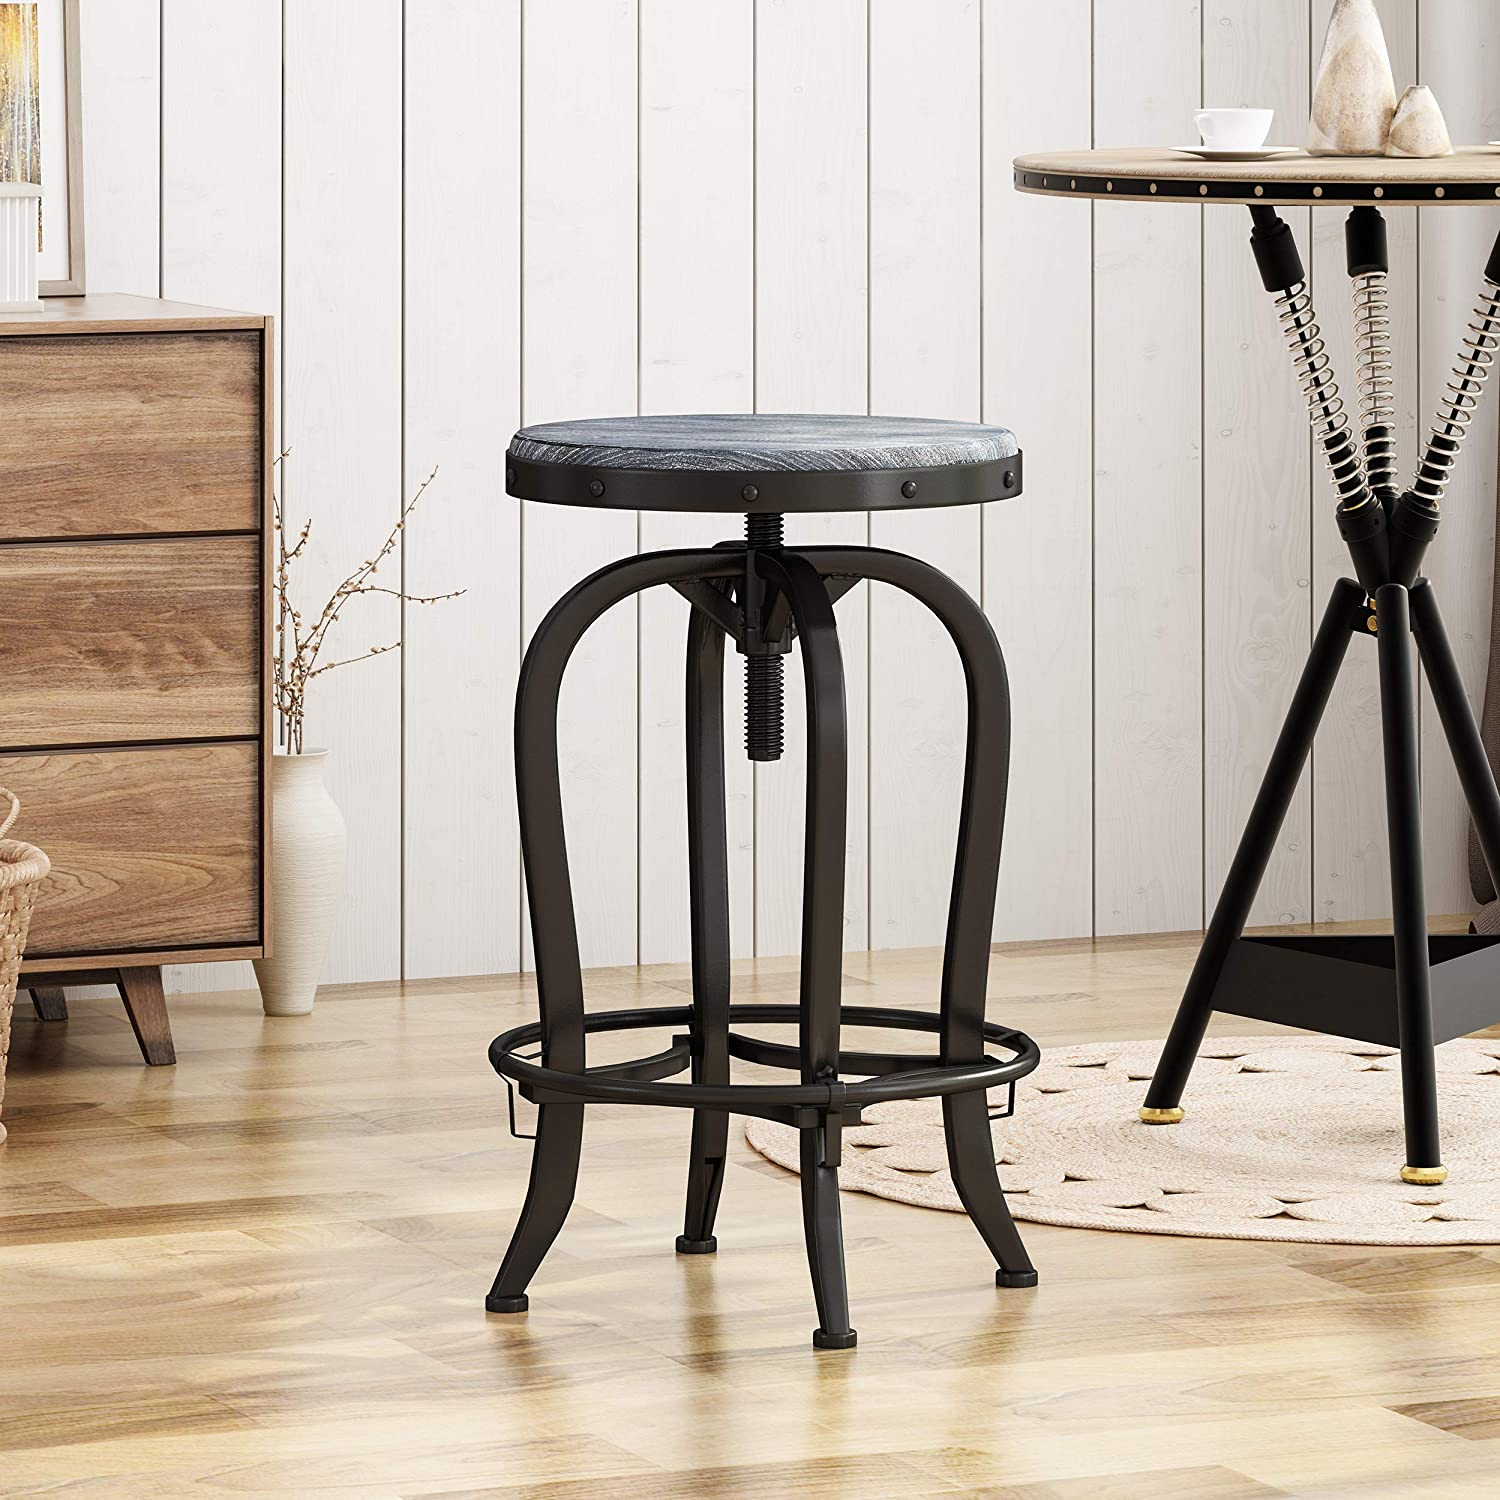 Christopher Knight Home Blake Reclaimed Swiveling Iron Barstool with Firwood Seat, Black and Brushed Dark Gray